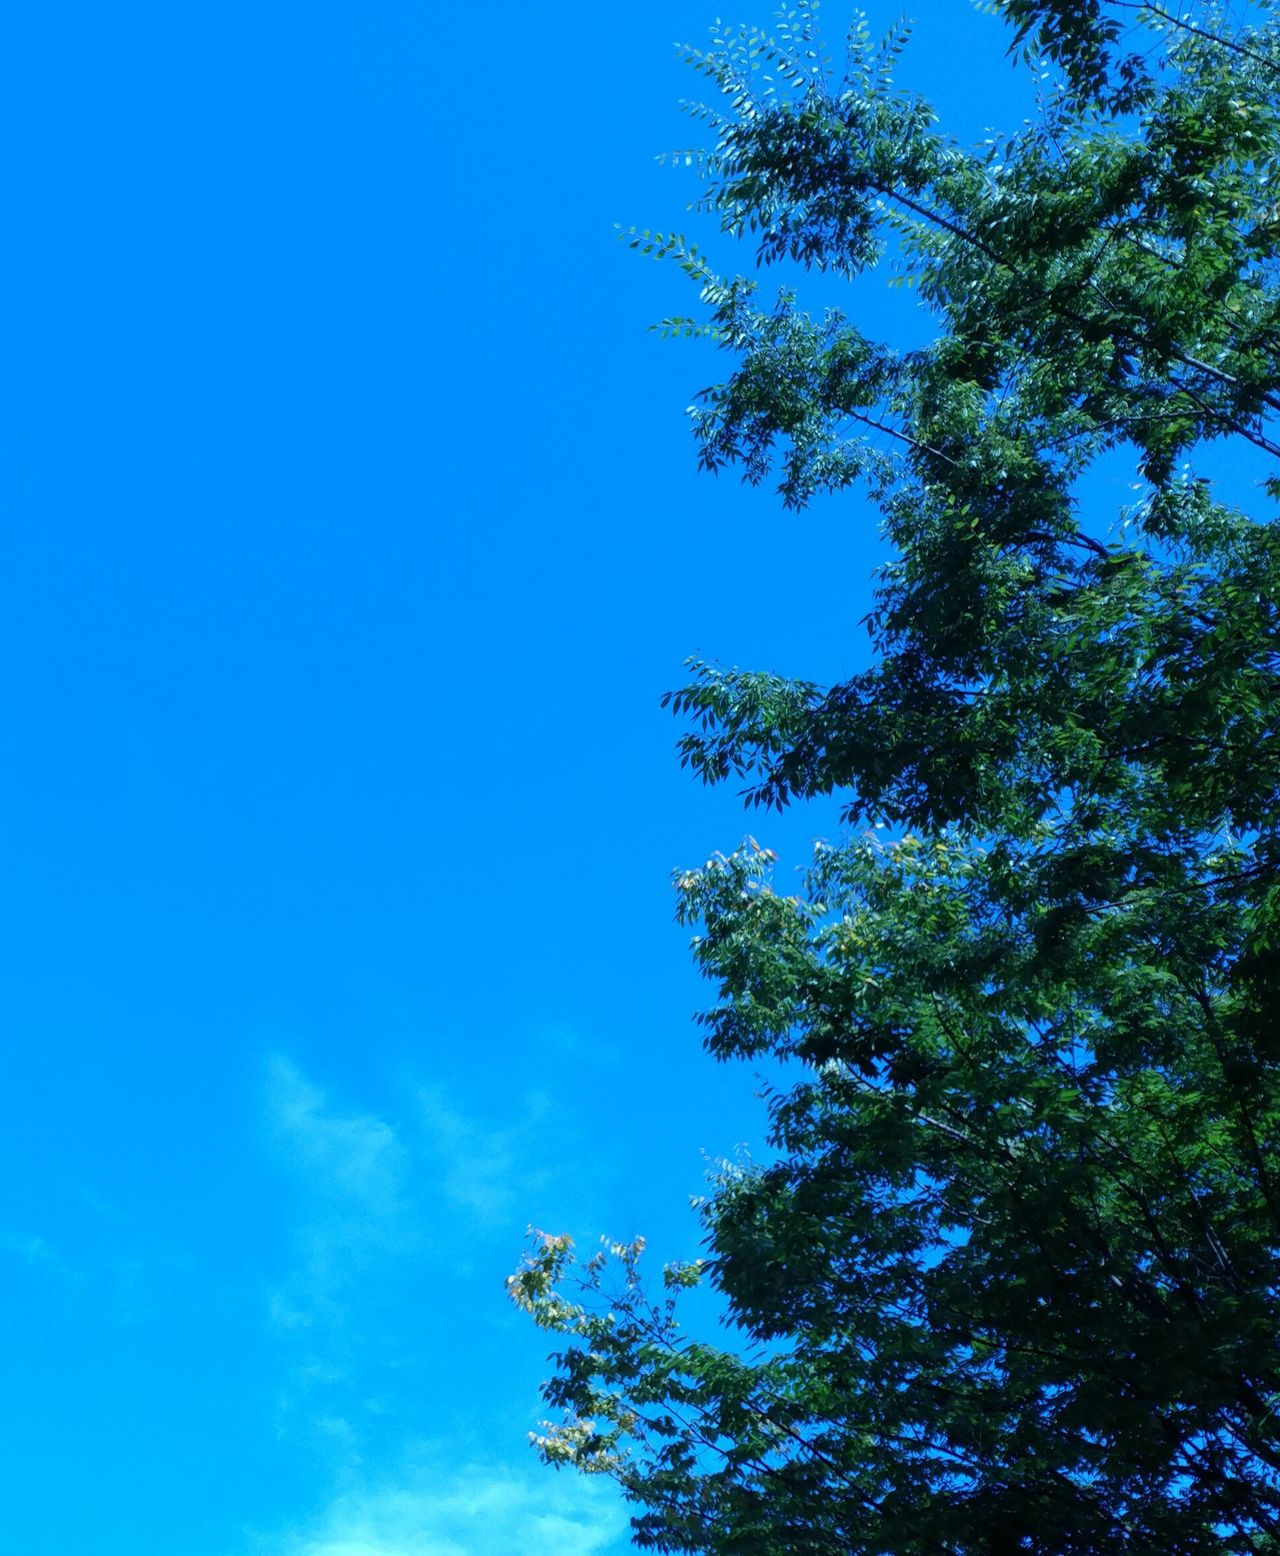 Sky Of The City Tree Blue Low Angle View Nature Sky Growth Beauty In Nature Tranquility Clear Sky Branch Treetop No People Day Outdoors Scenics